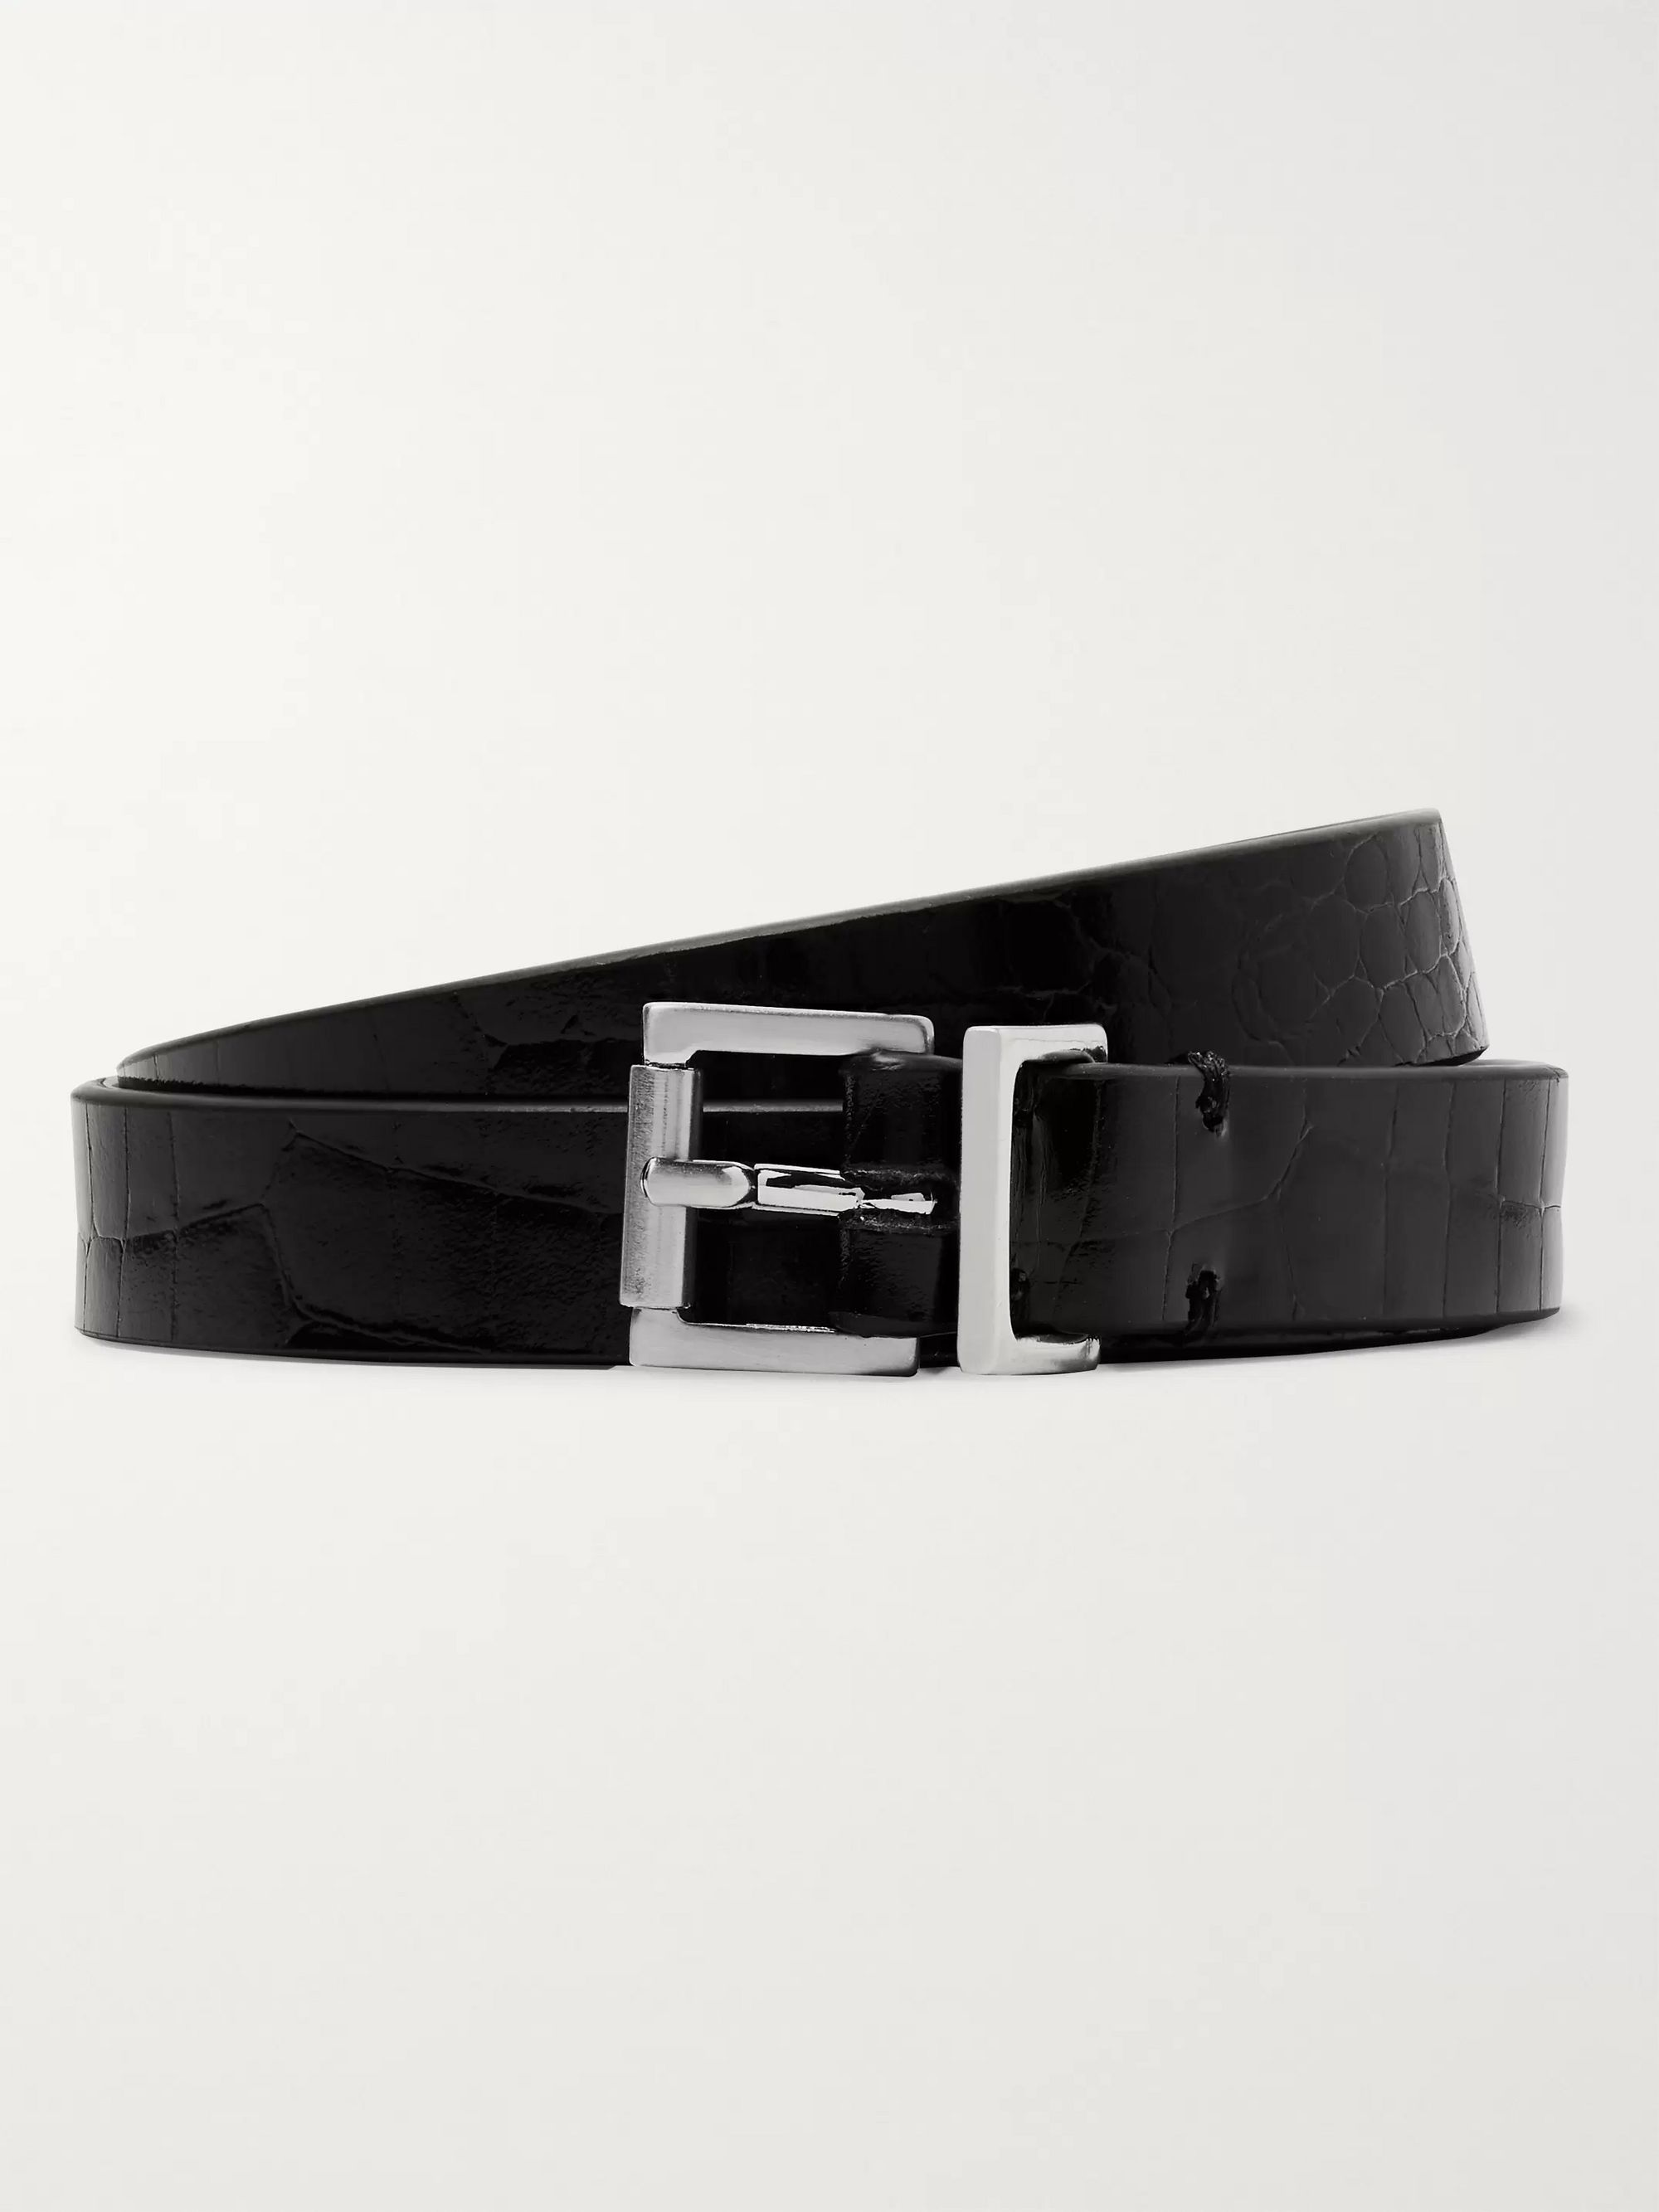 Maison Margiela 1.5cm Black Croc-Effect Leather Belt